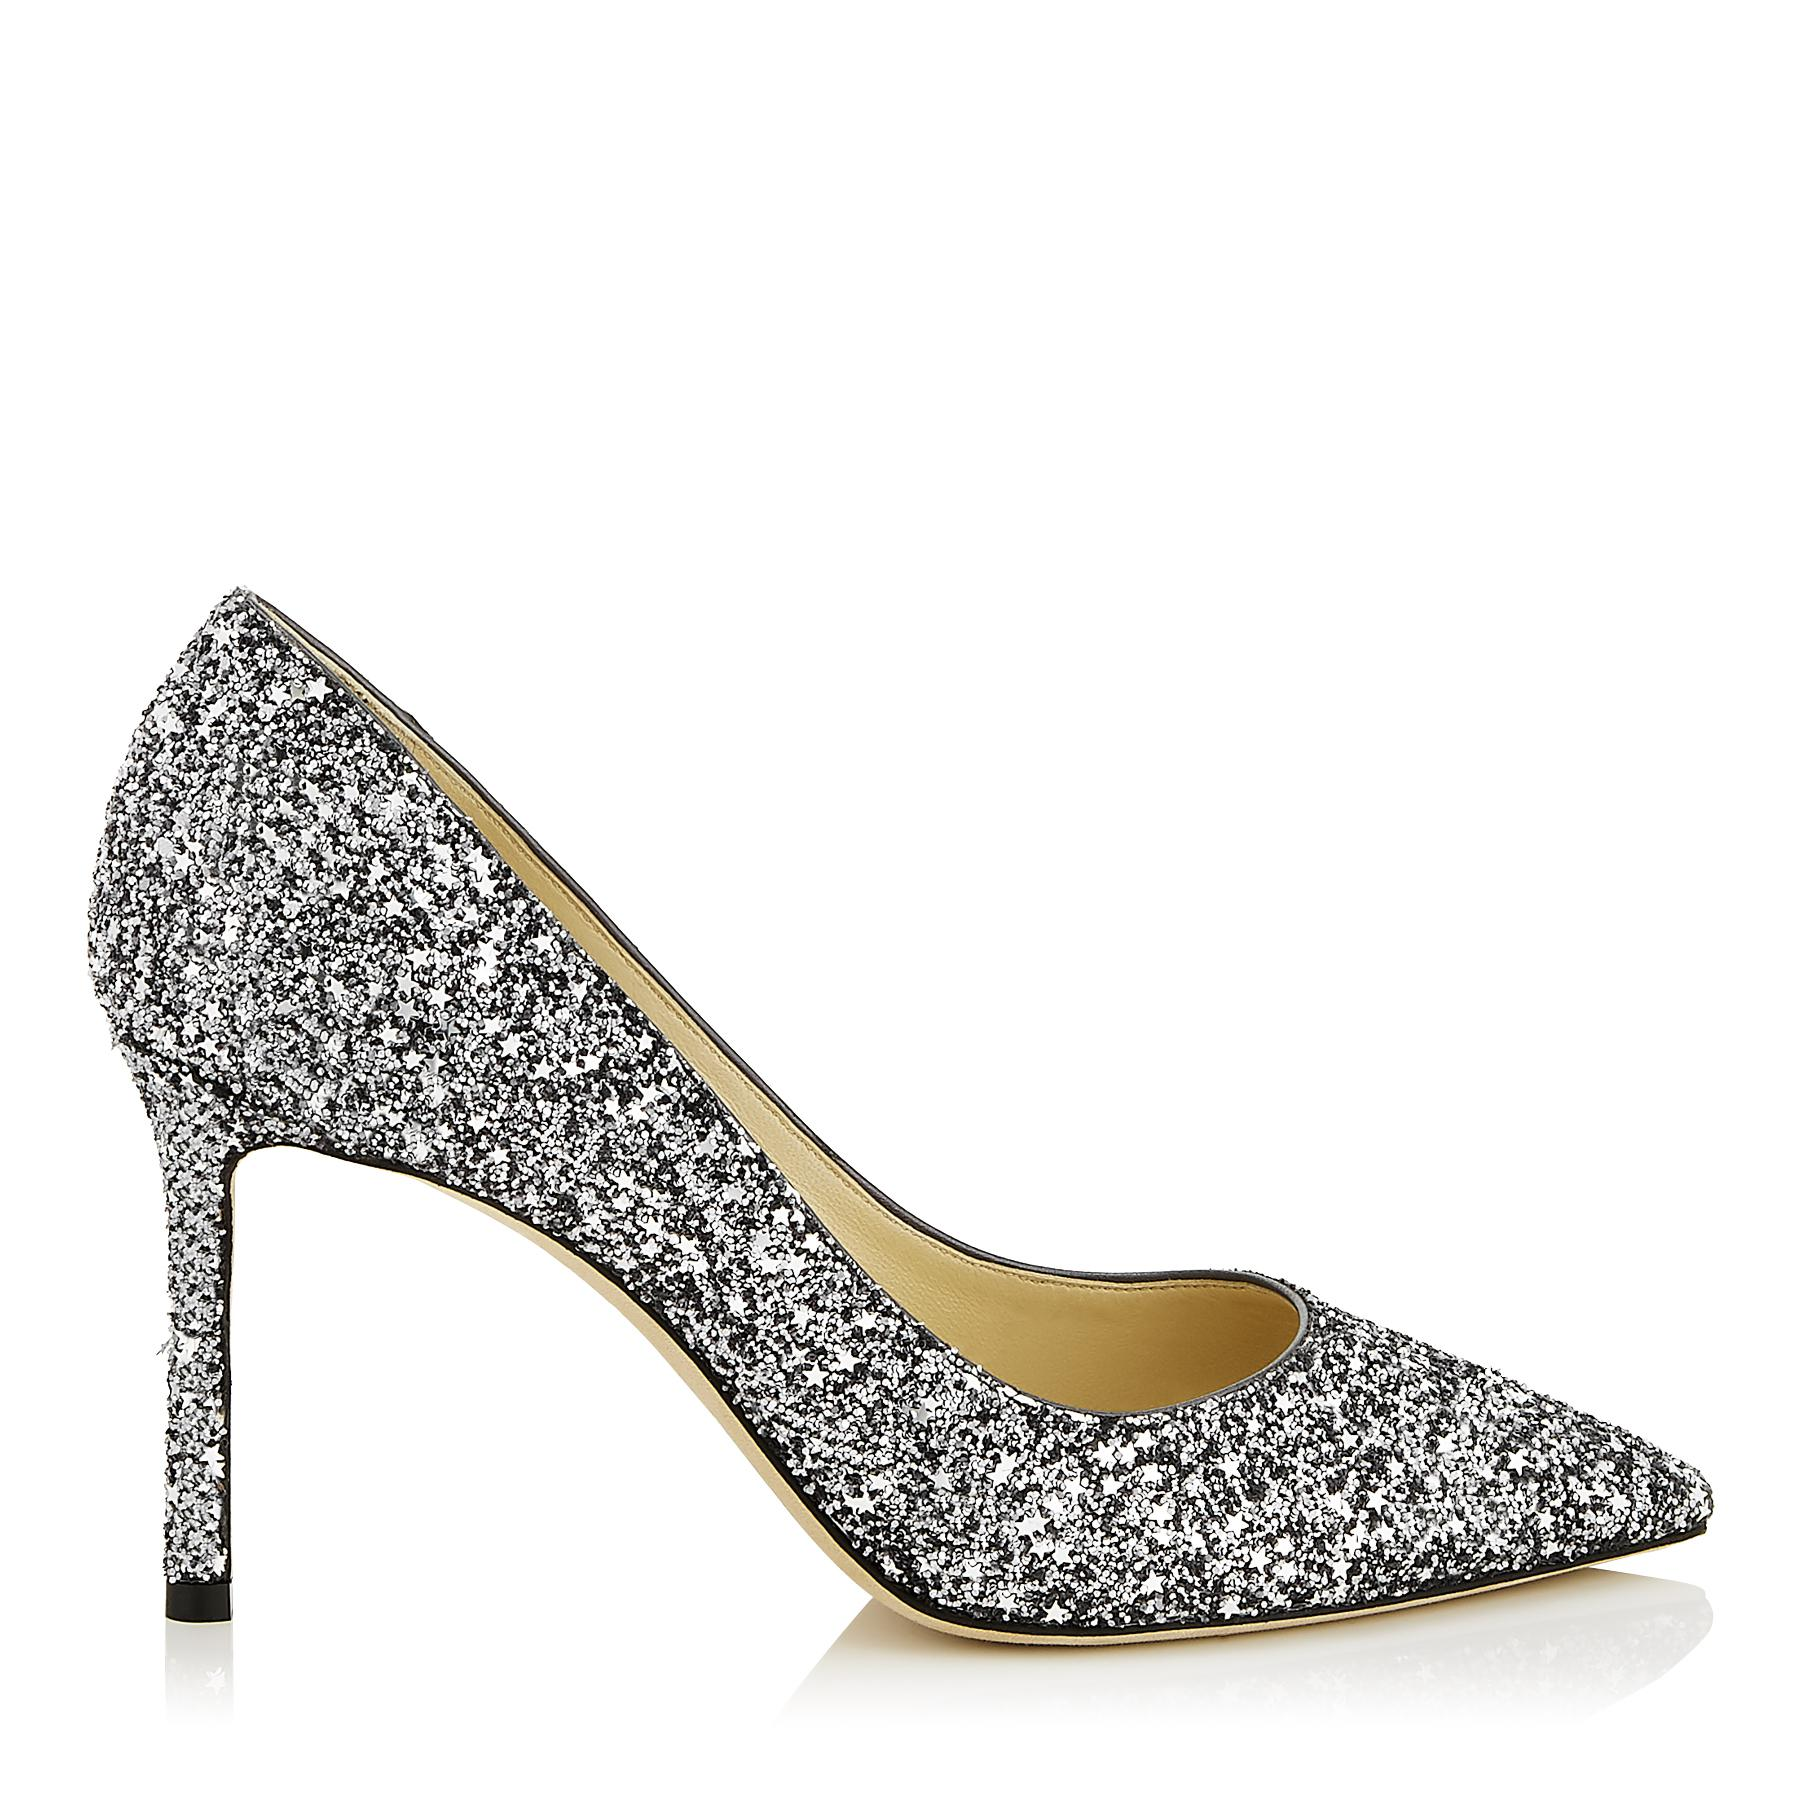 8918daac8442 Jimmy Choo. Women s Romy 85 Gunmetal Star Coarse Fabric Pointy Toe Pumps